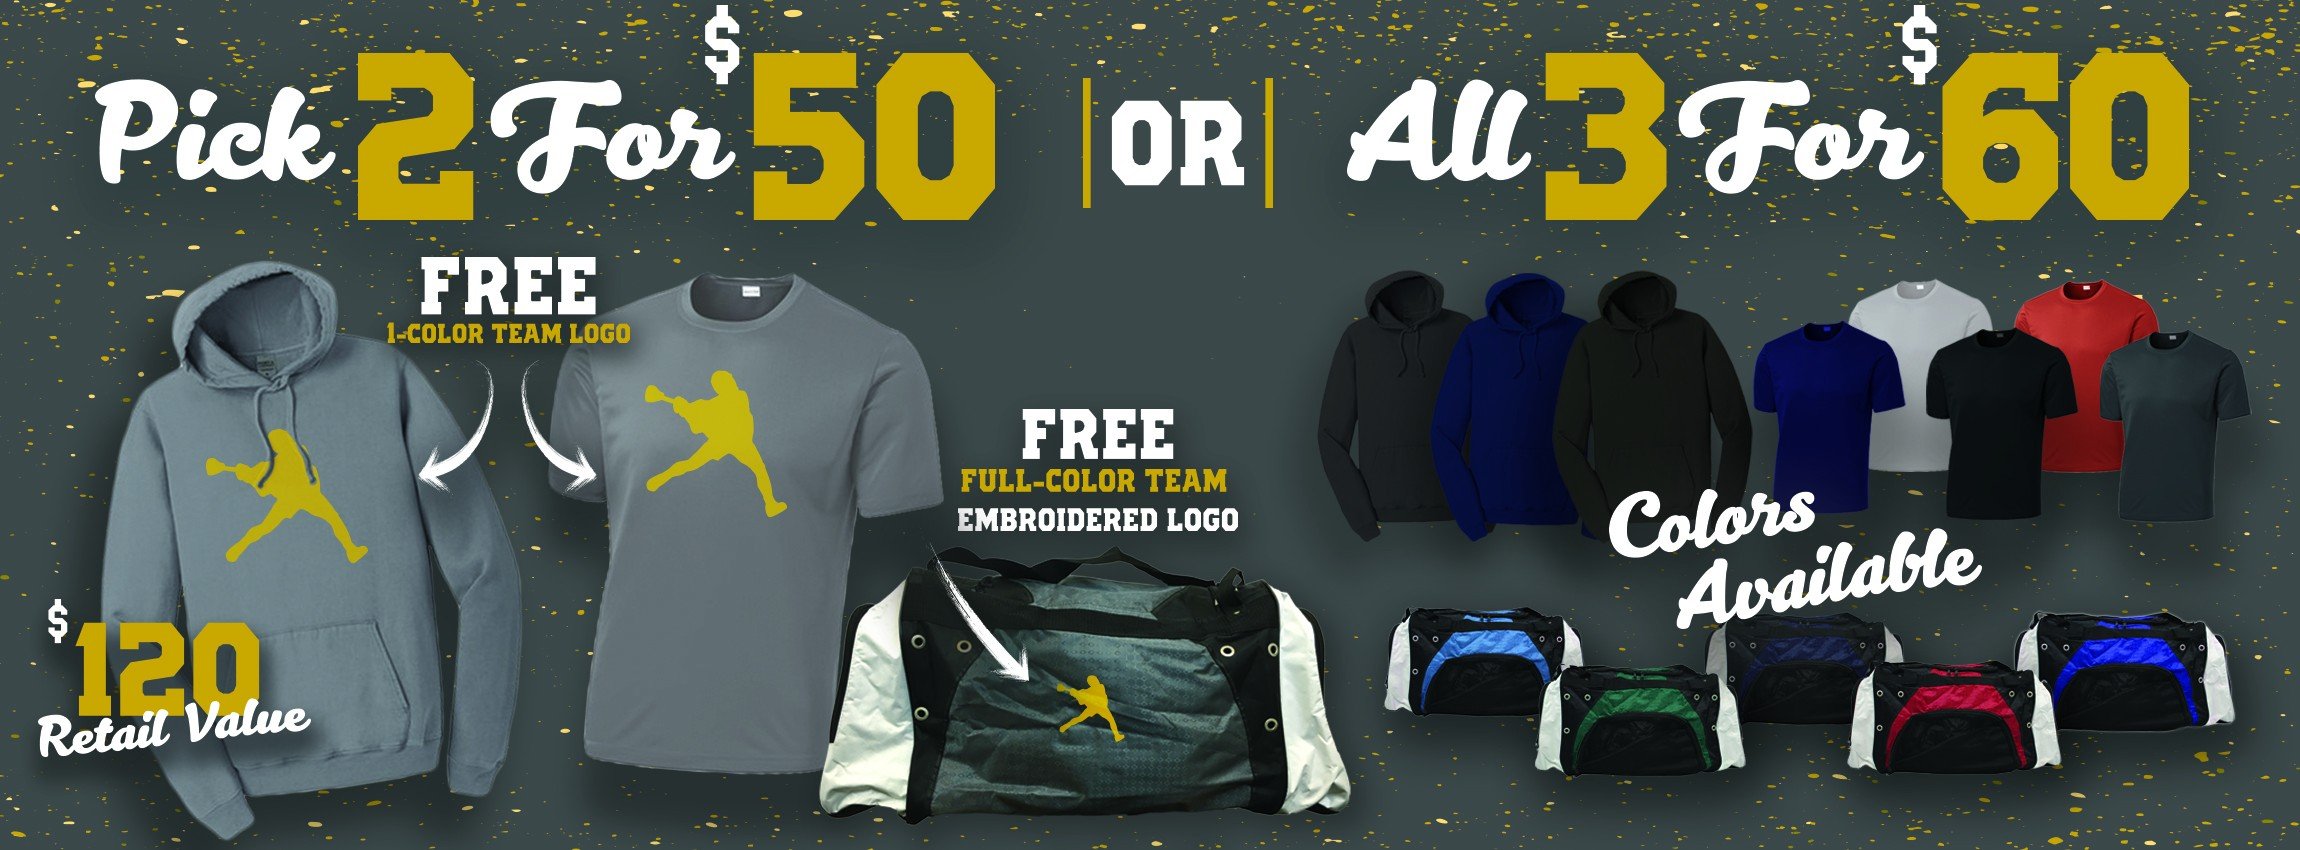 Get a Hoodie and Shirt for $50! ADD A bag for $10 more!